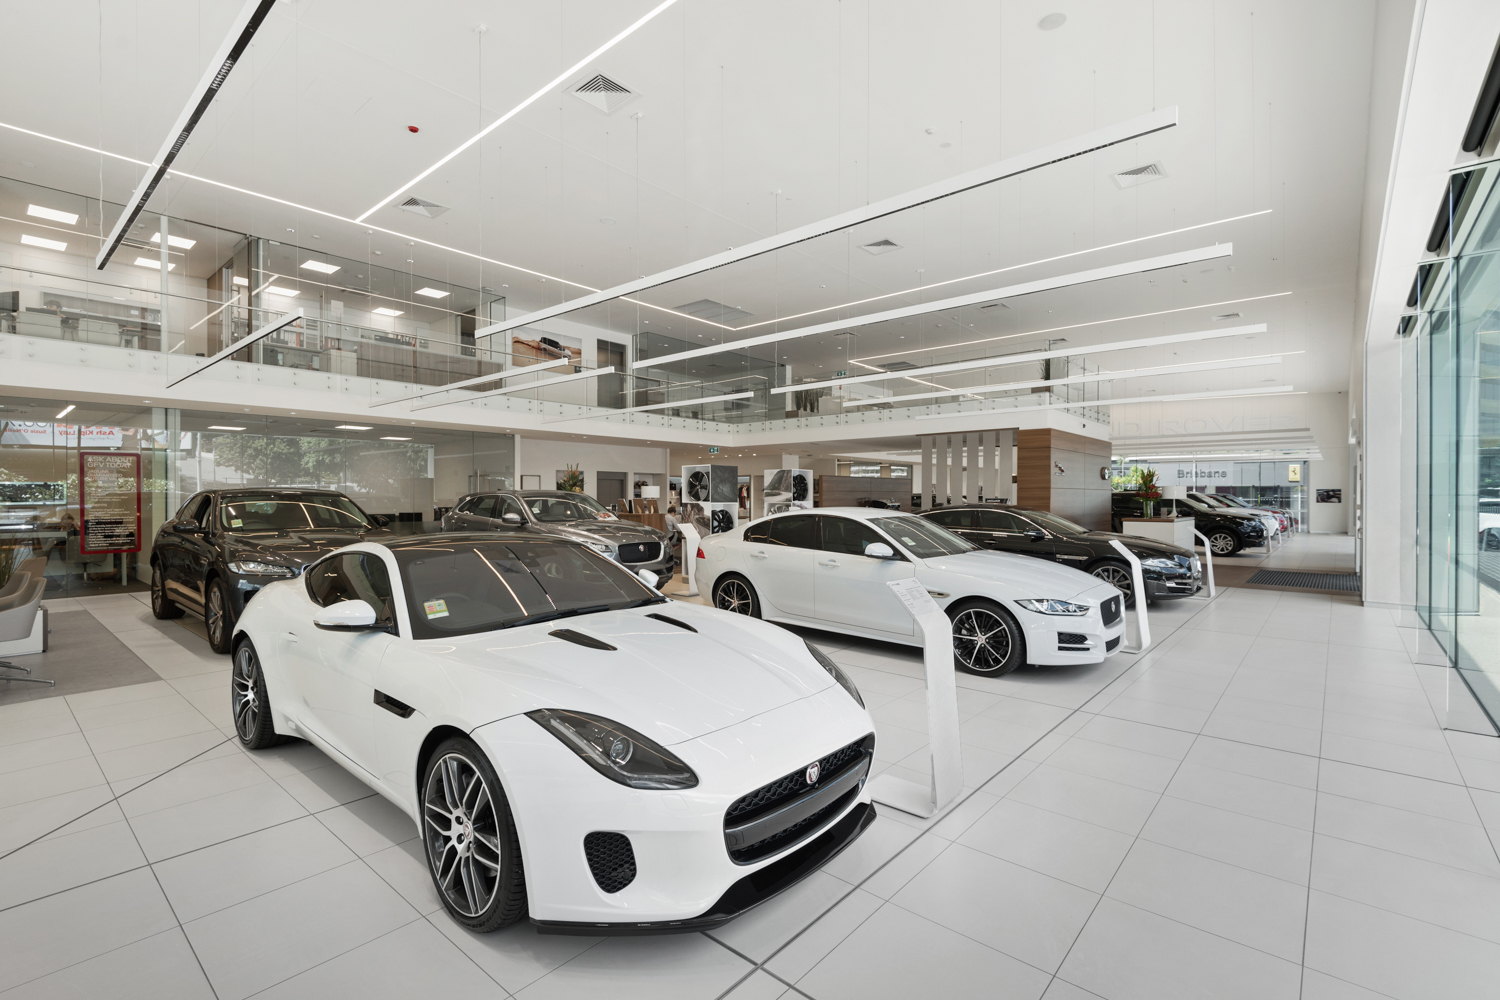 Jag & Landrover Showroom, Newstead